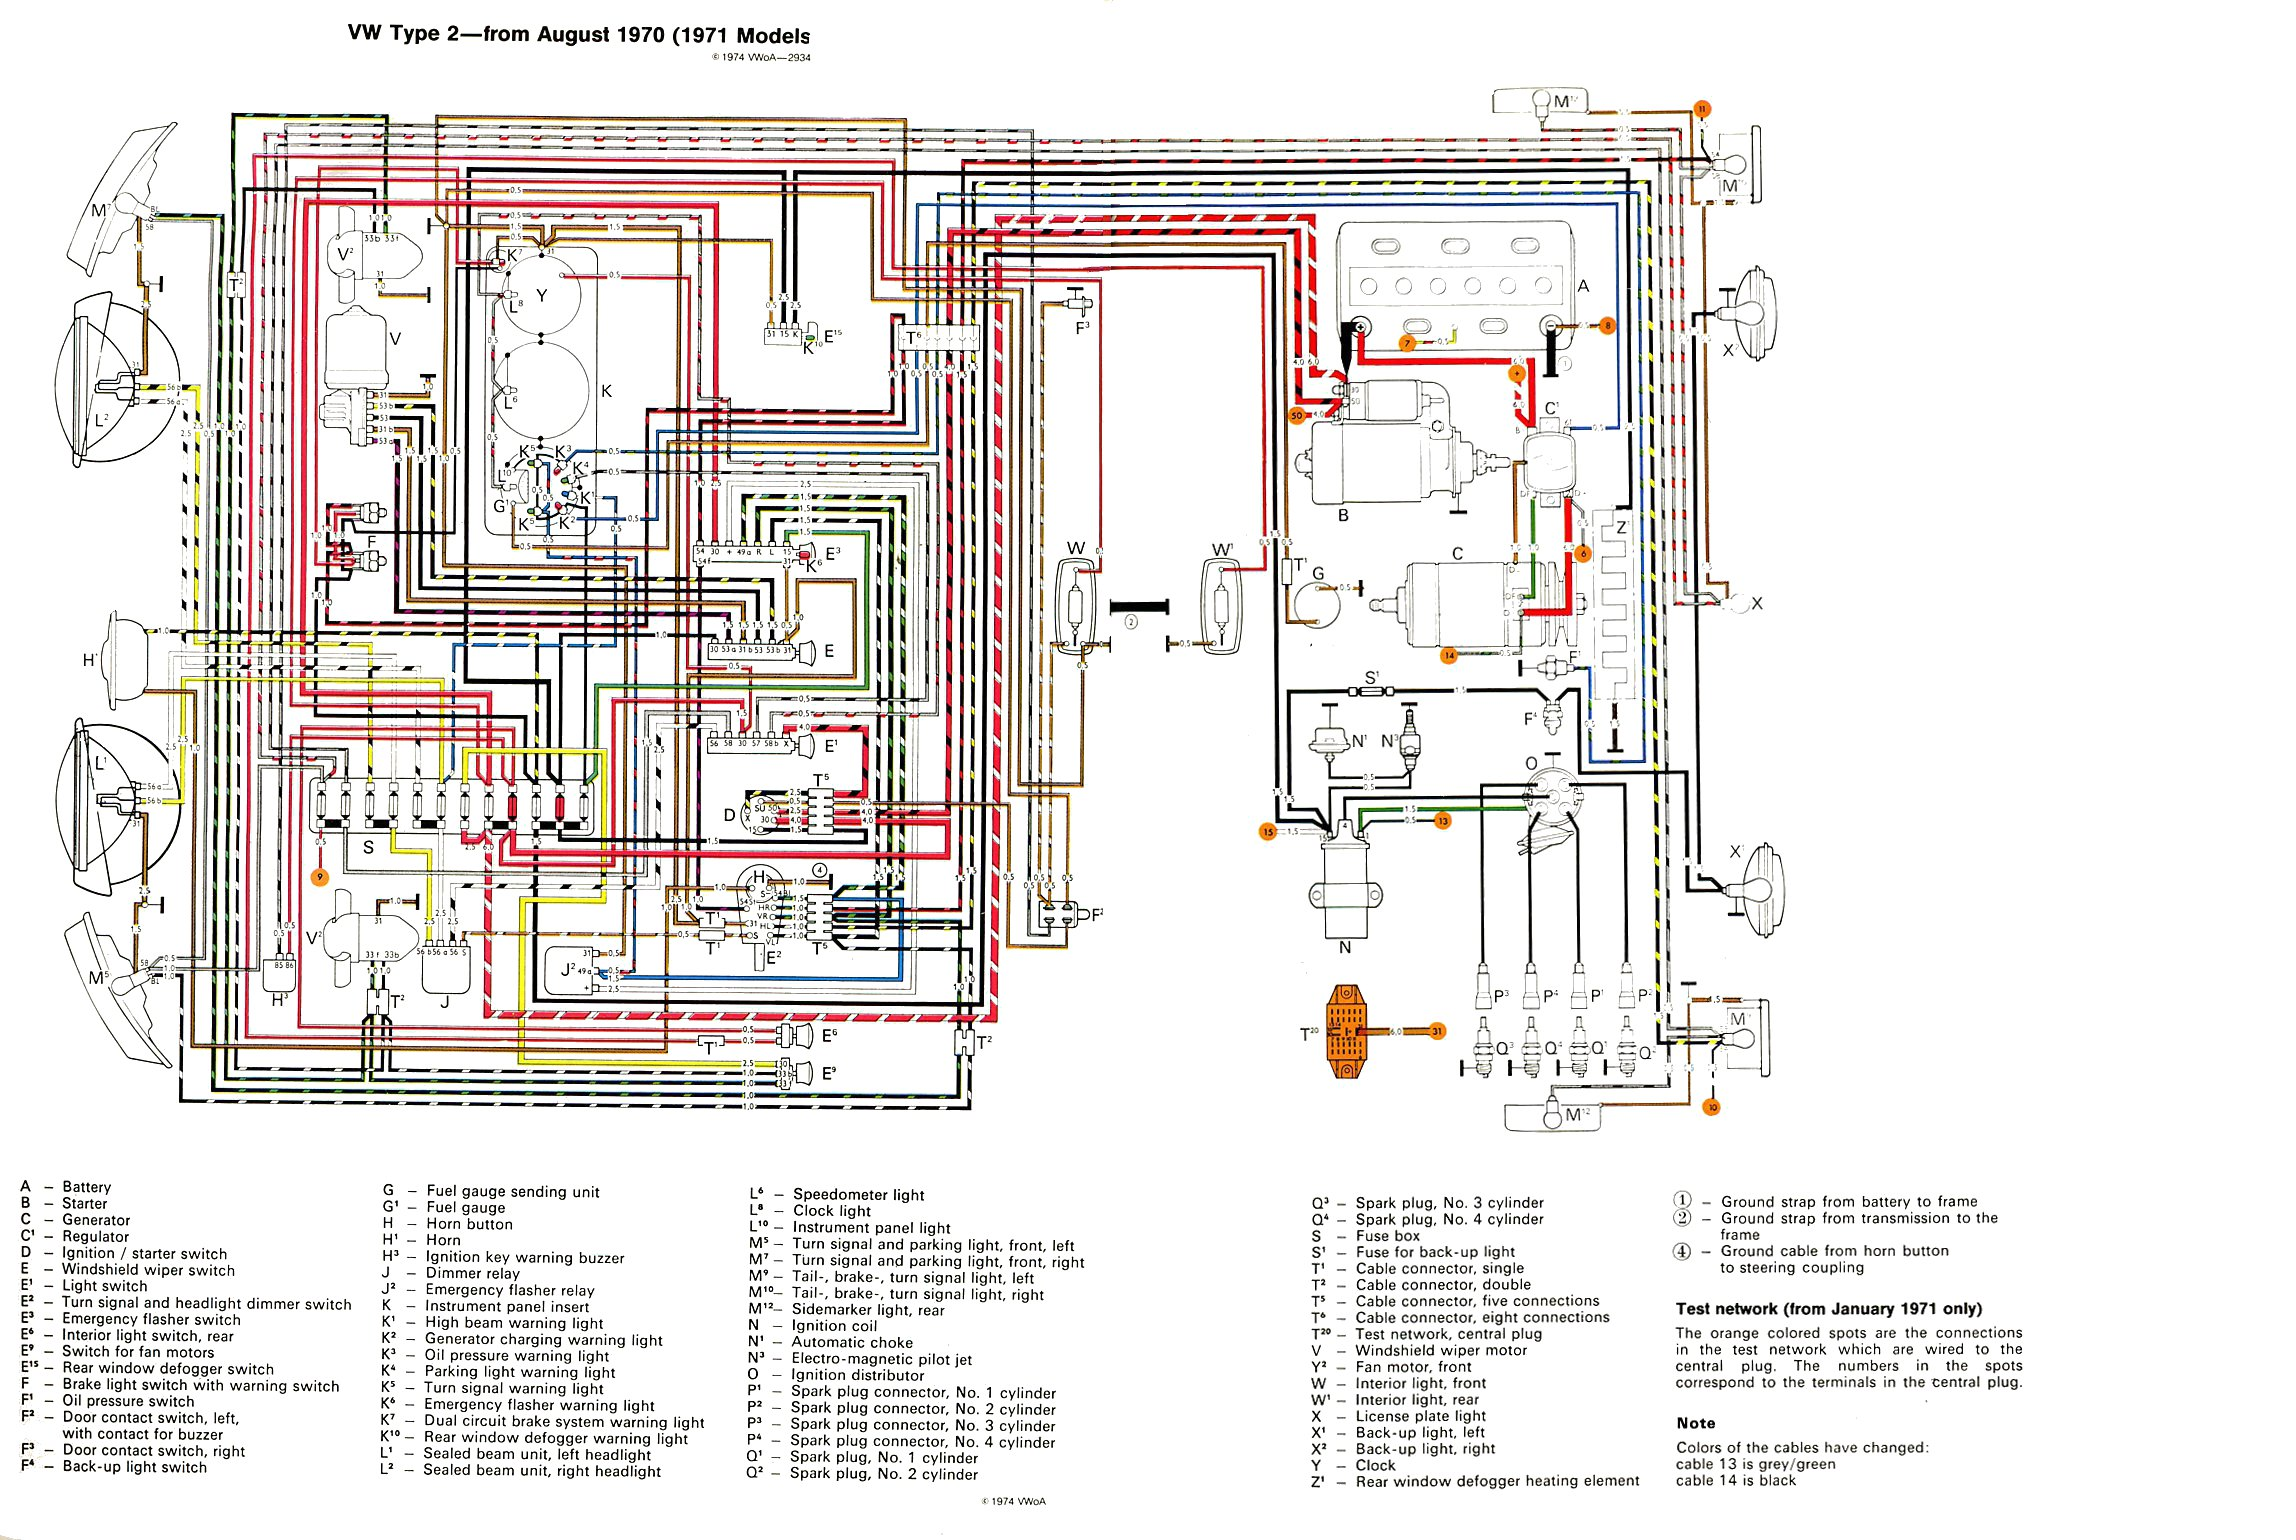 baybus_71 thesamba com type 2 wiring diagrams pdf wiring diagrams at bayanpartner.co